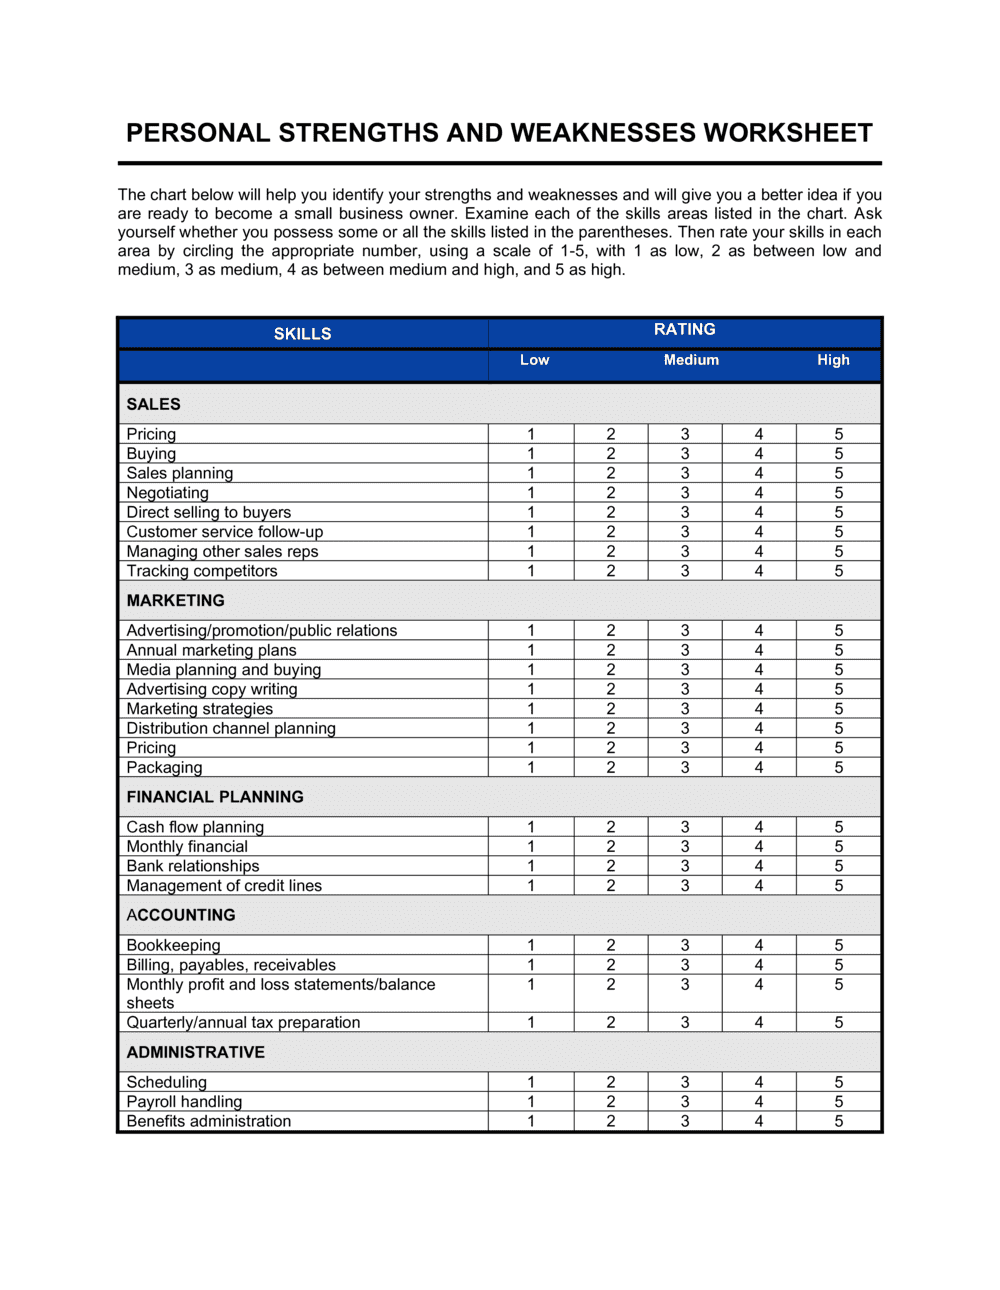 Business-in-a-Box's Worksheet Strengths and Weaknesses Template